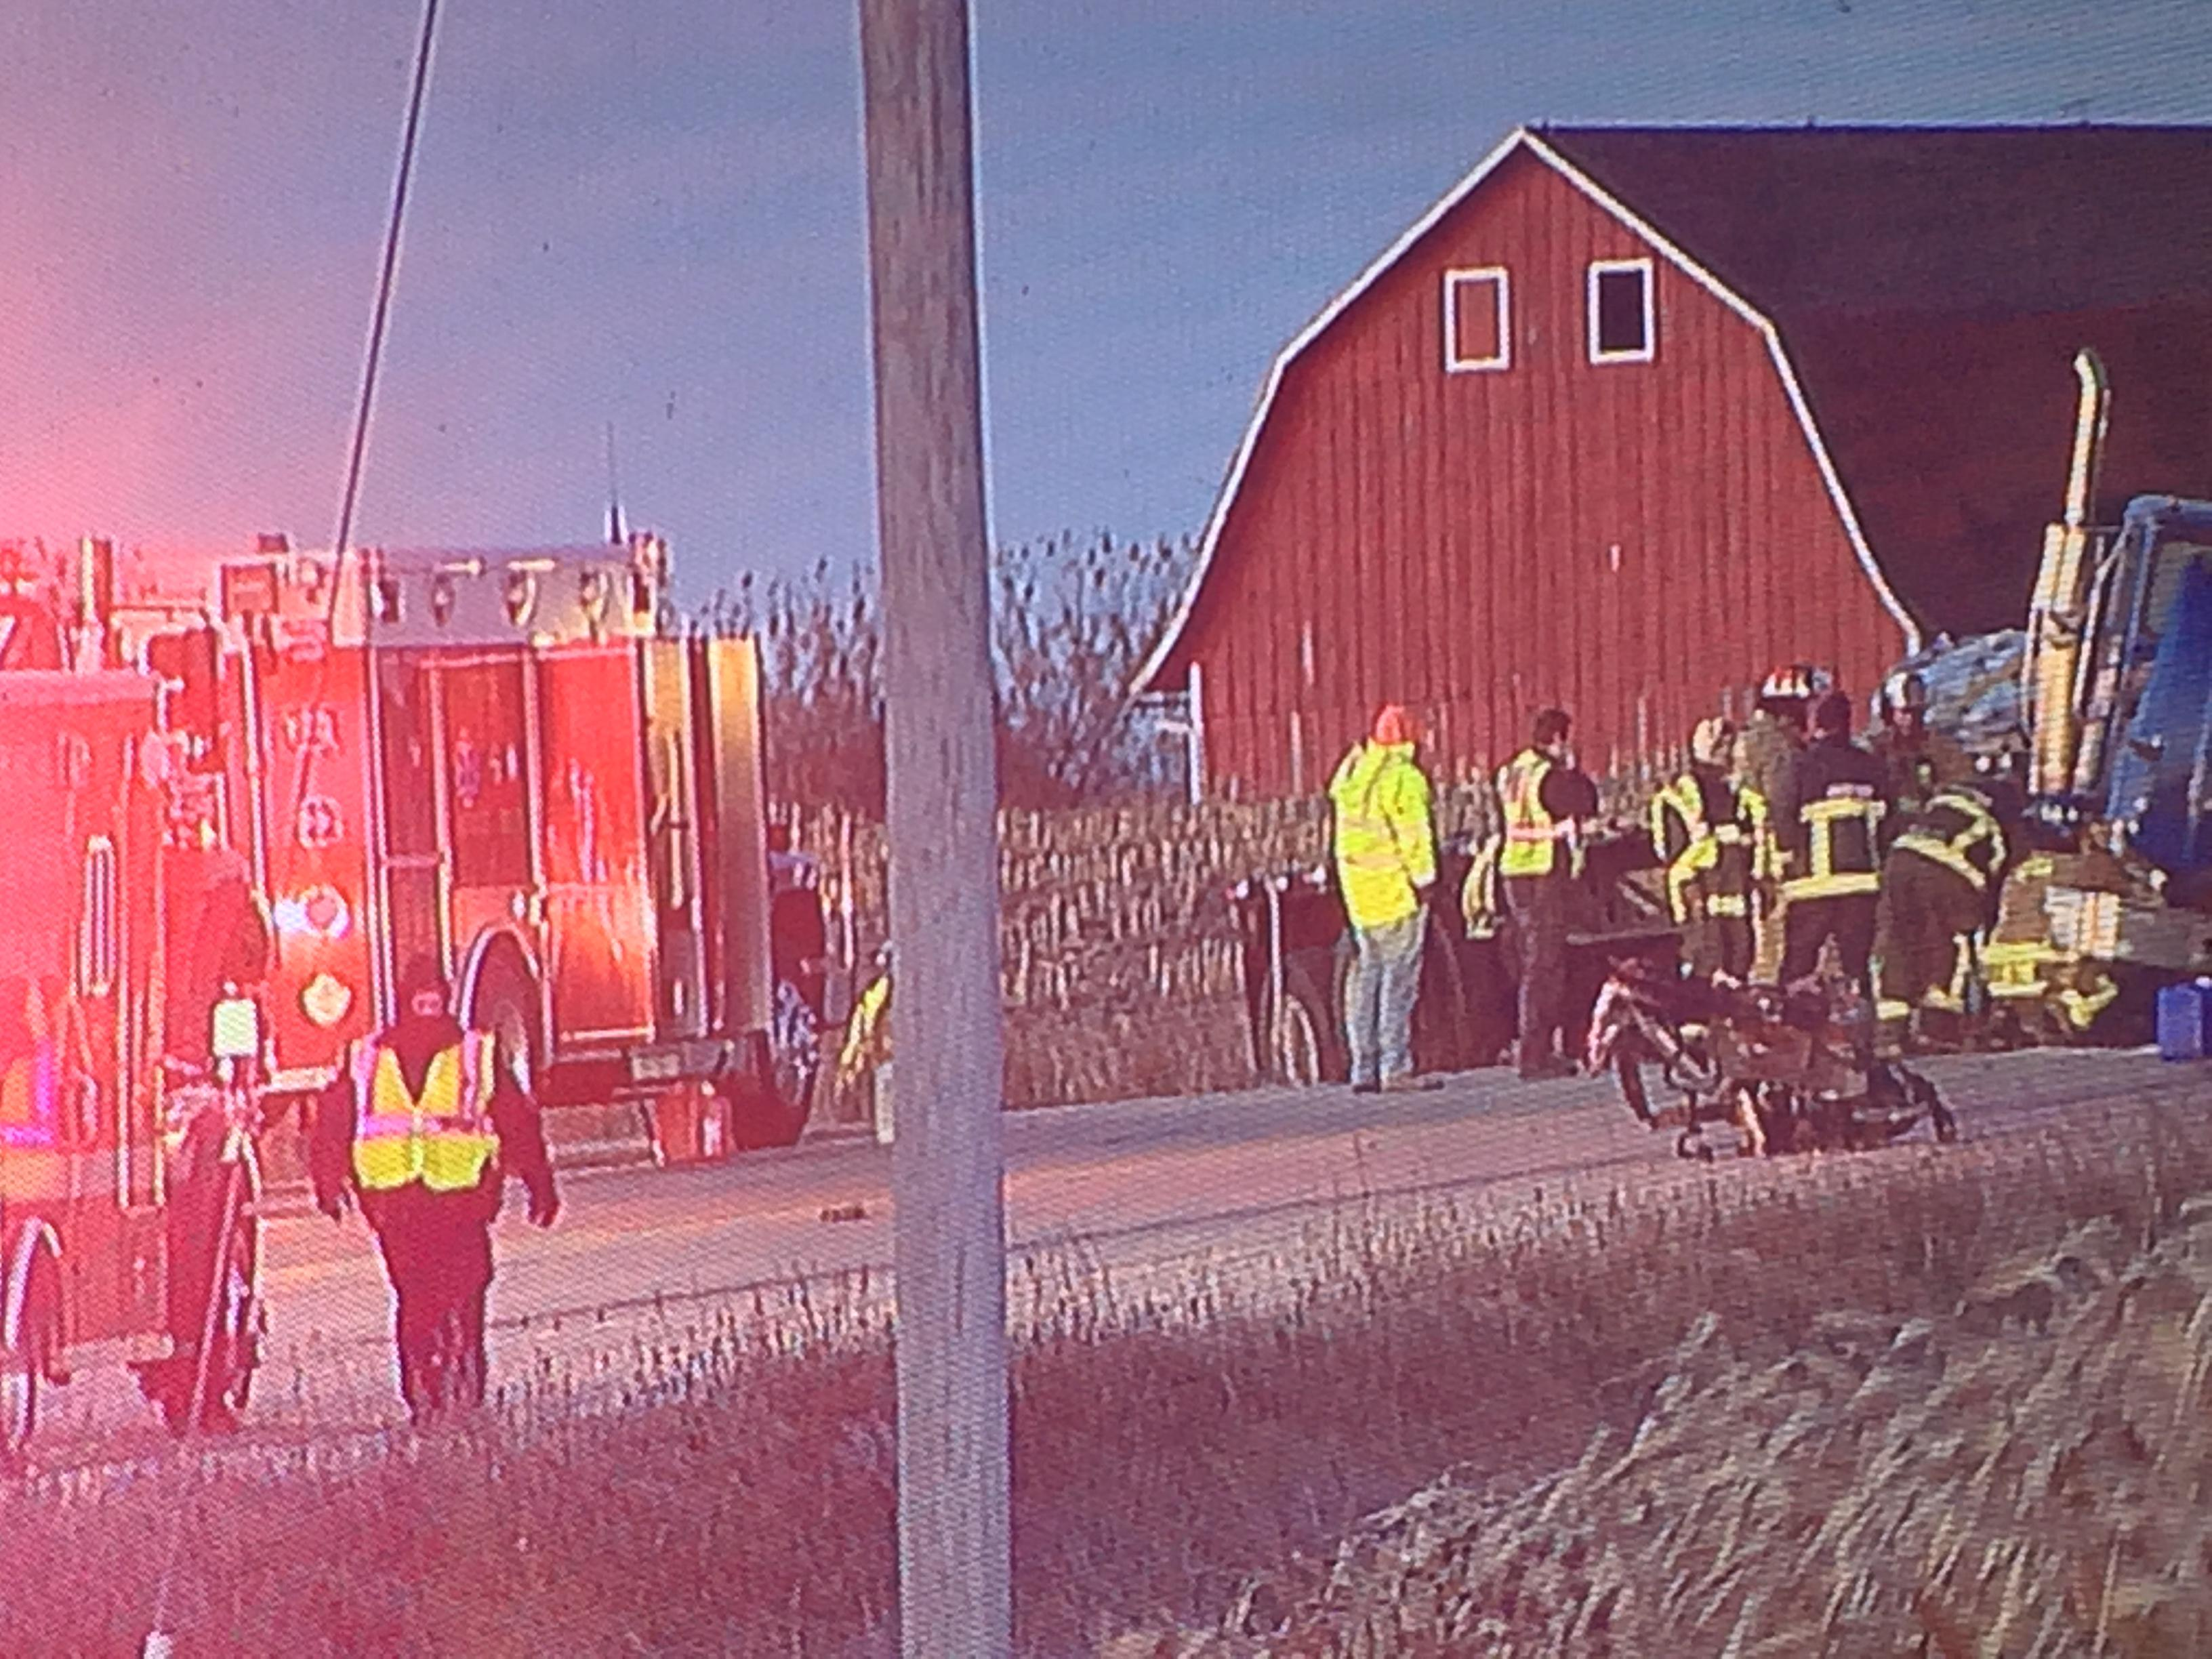 First responders at a traffic crash on Highway 44 near FF in Winnebago County on Friday,{&amp;nbsp;} November 10, 2017. (WLUK/Mike Moon)<p></p>